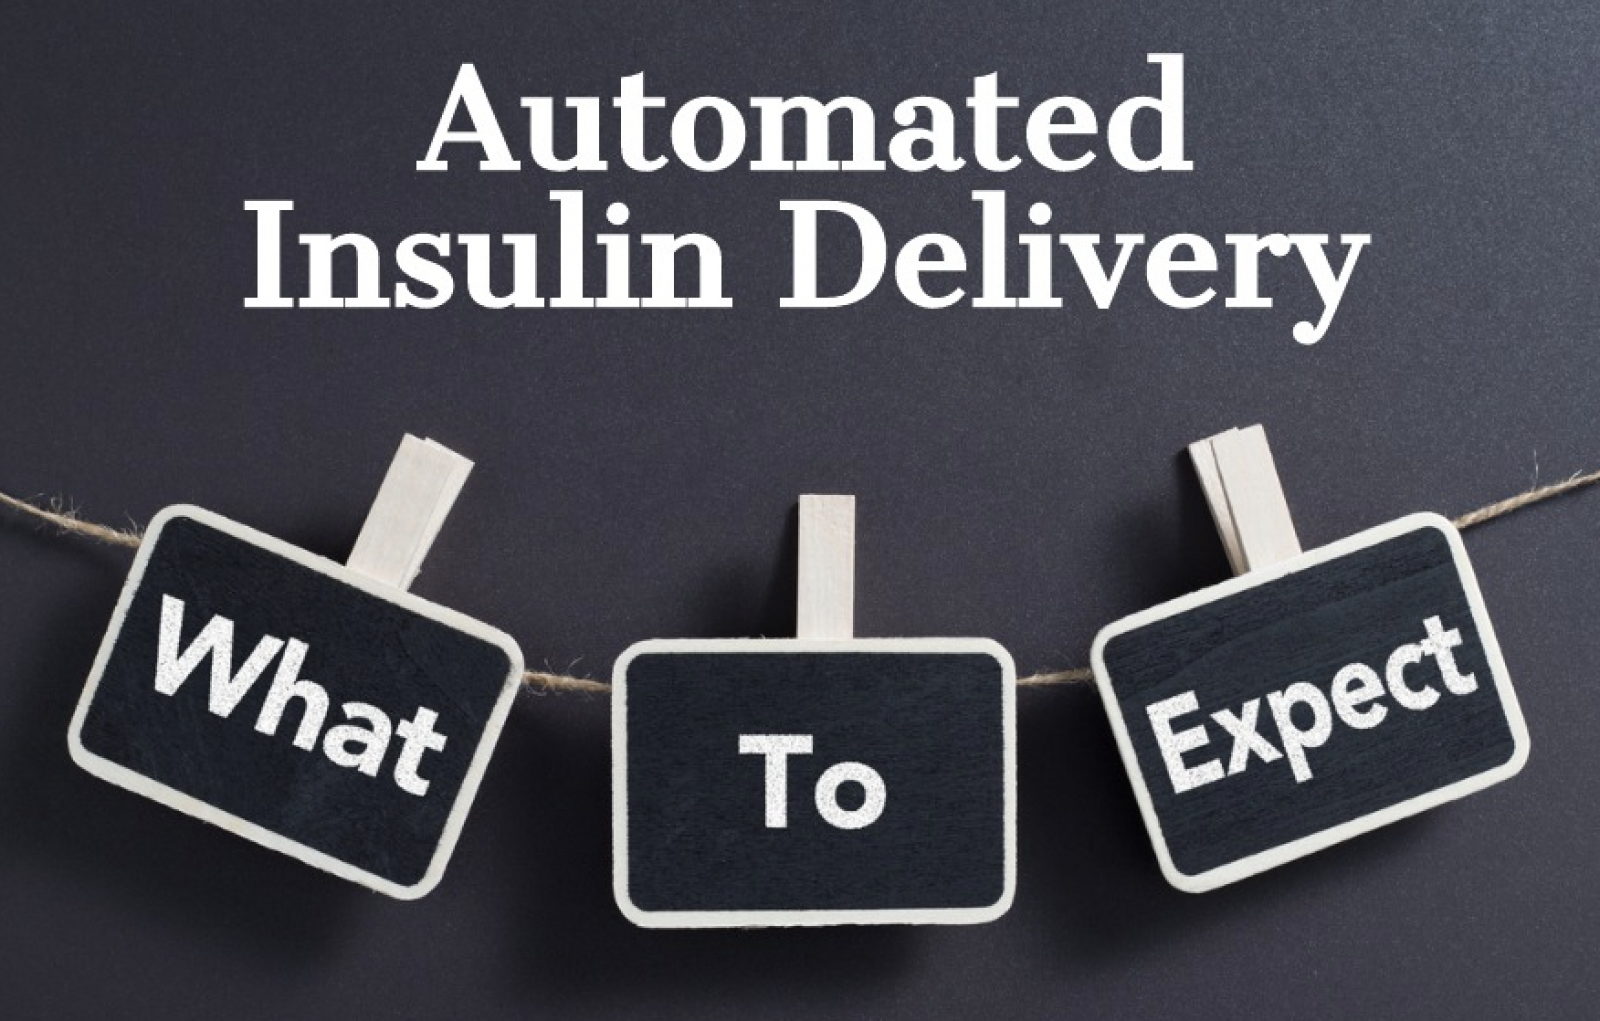 Automated Insulin Delivery: Six Universal Observations and Understandings